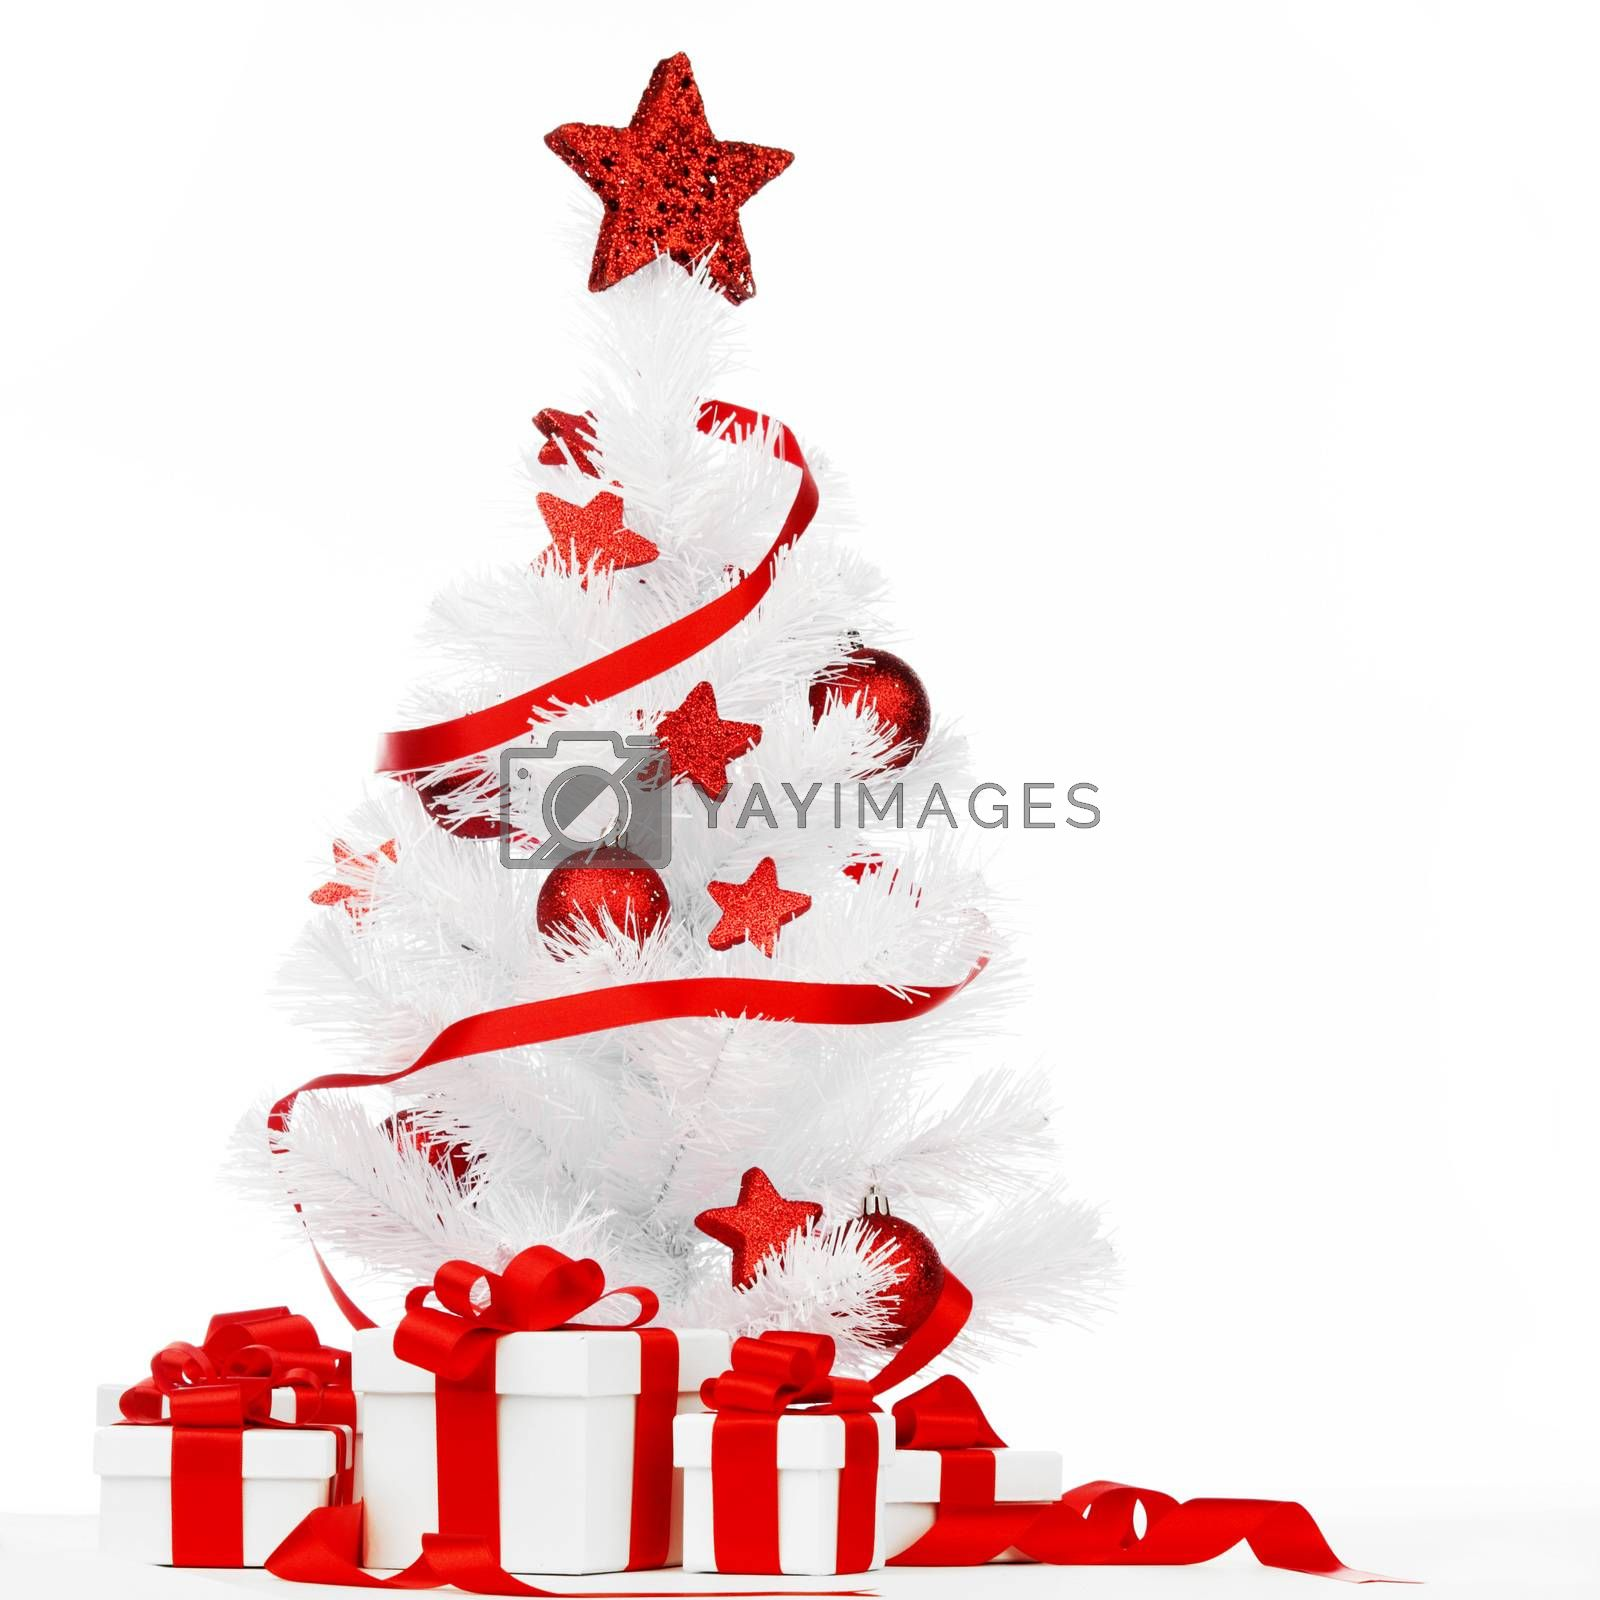 Royalty free image of Christmas tree with red decor by Yellowj